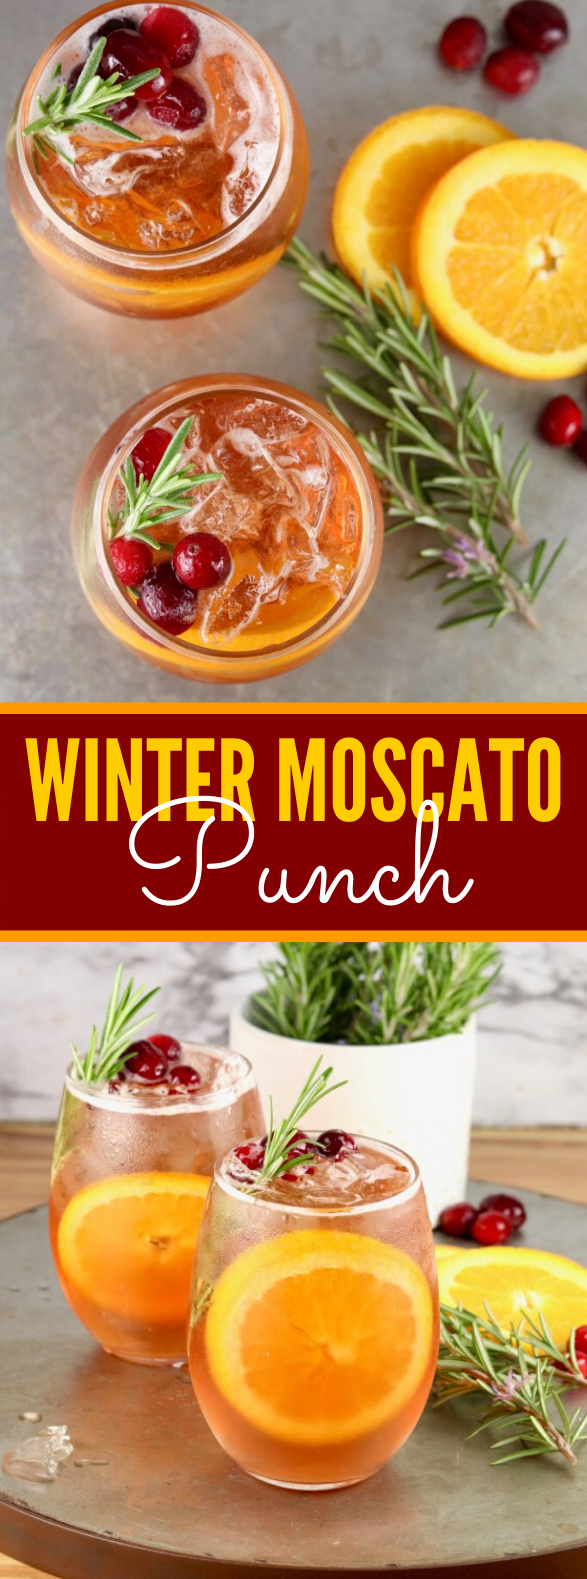 Winter Moscato Punch #drinks #sangria